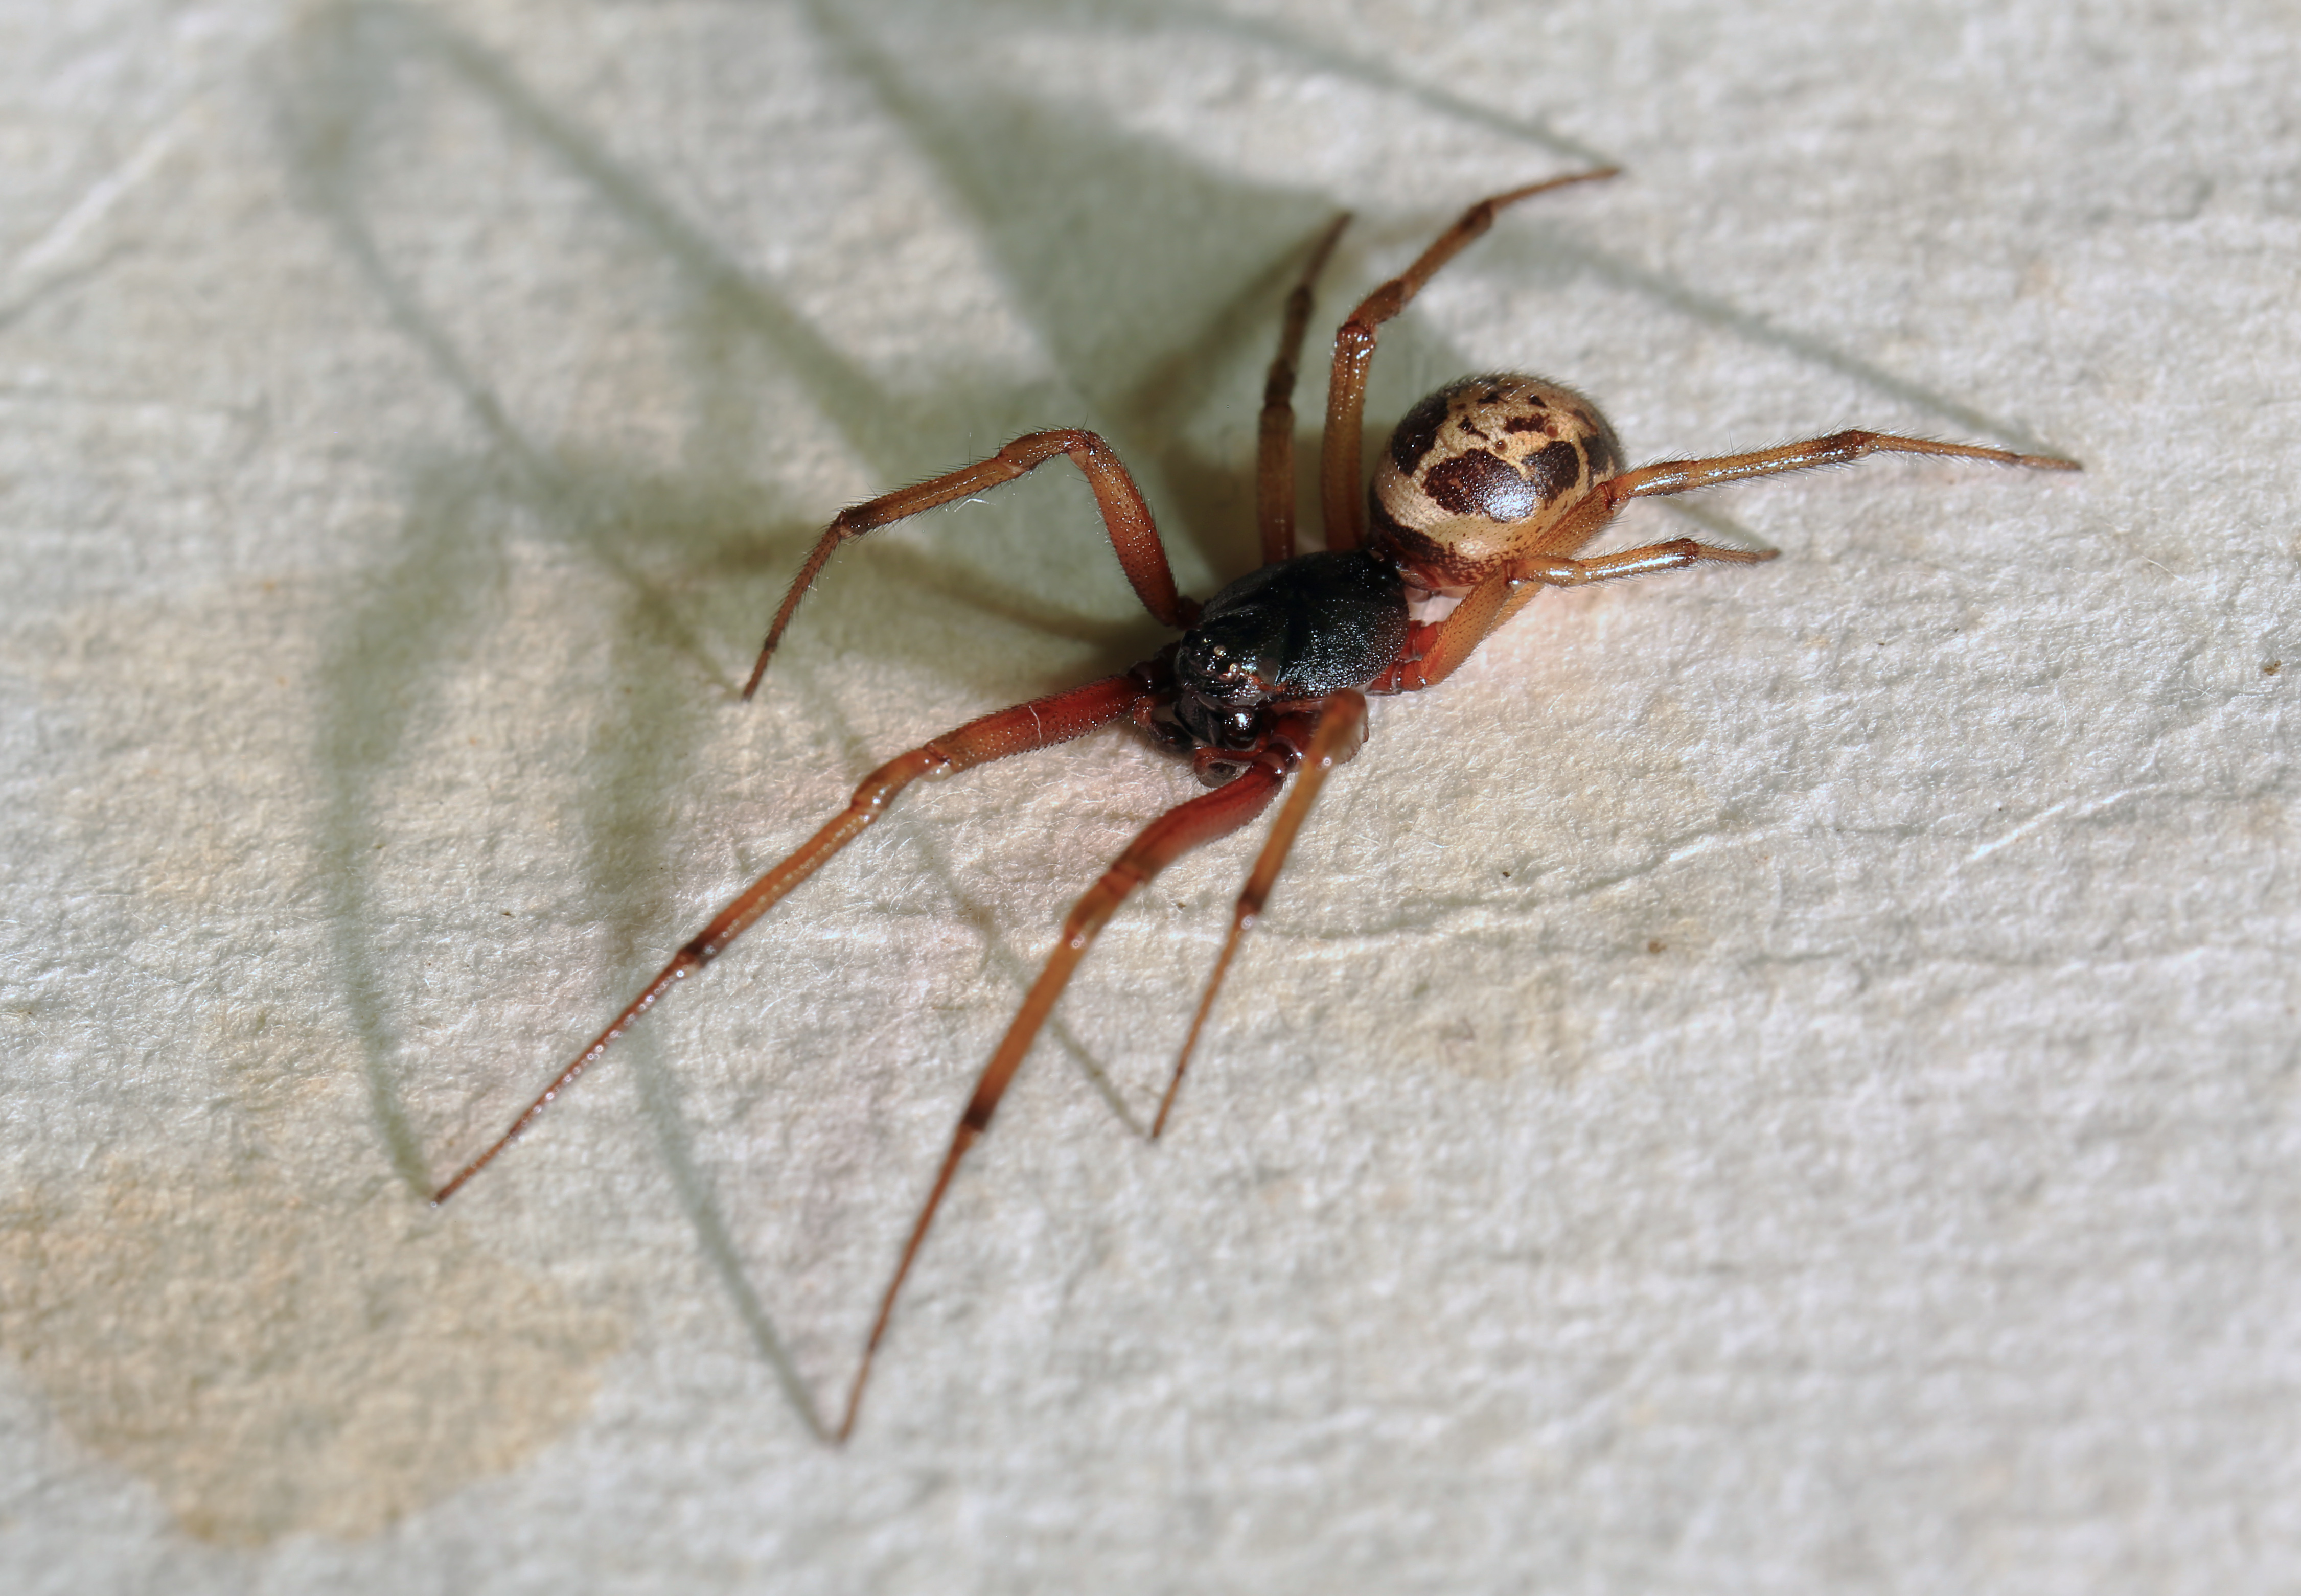 As False Widow Spiders Spread, Heres How To Spot One And Treat Bite Steatoda nobilis Noble False Widow Spider UK